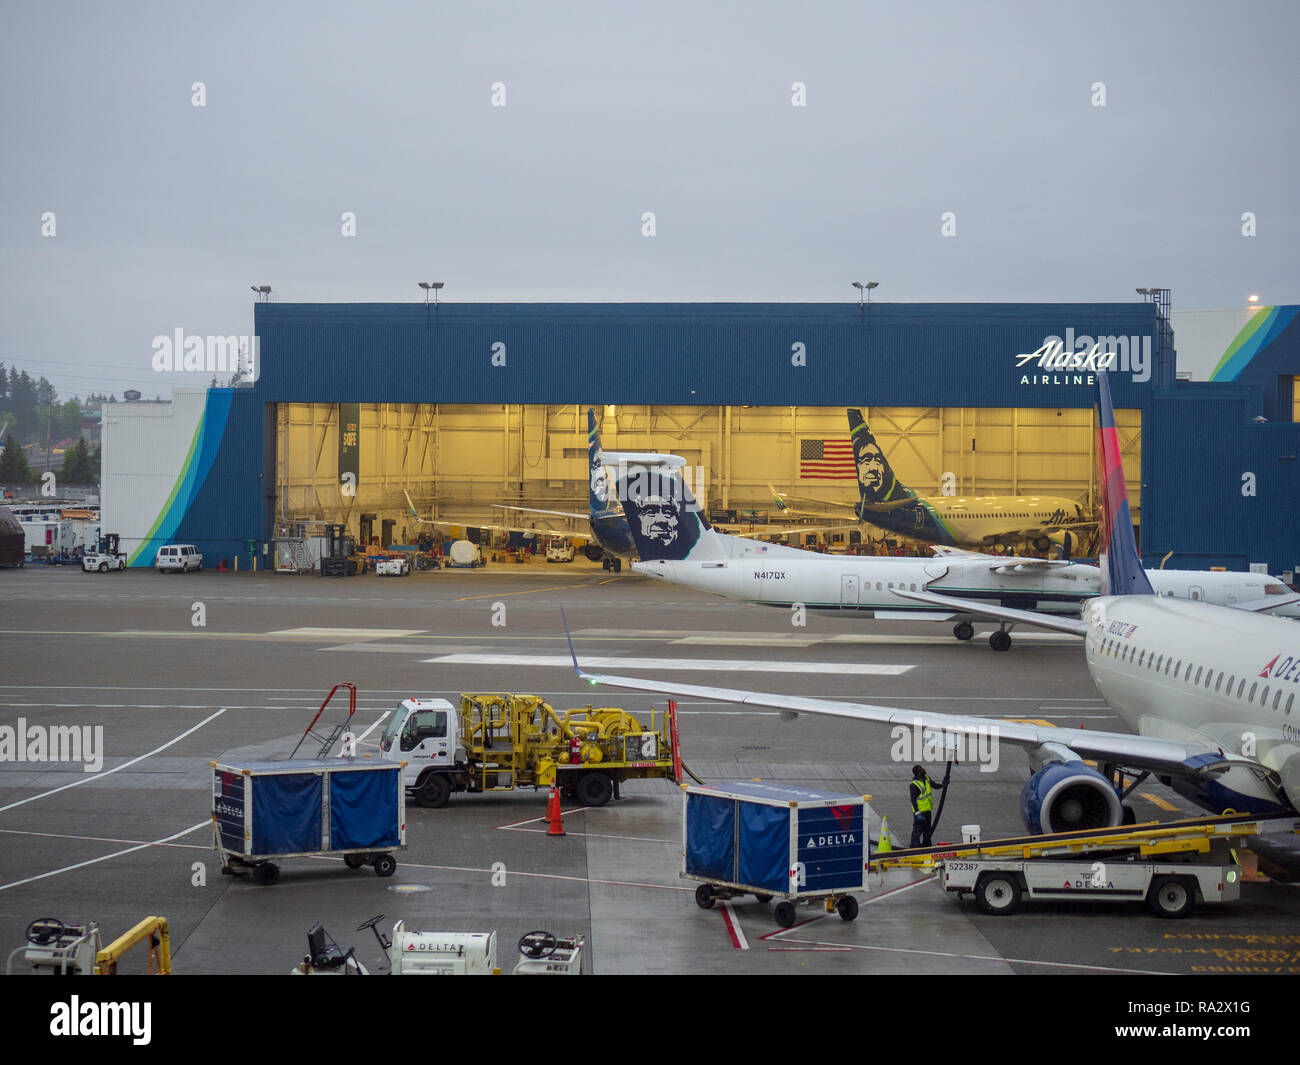 Alaska Airlines hanger and airplane at Seattle Tacoma International Airport terminal - Stock Image